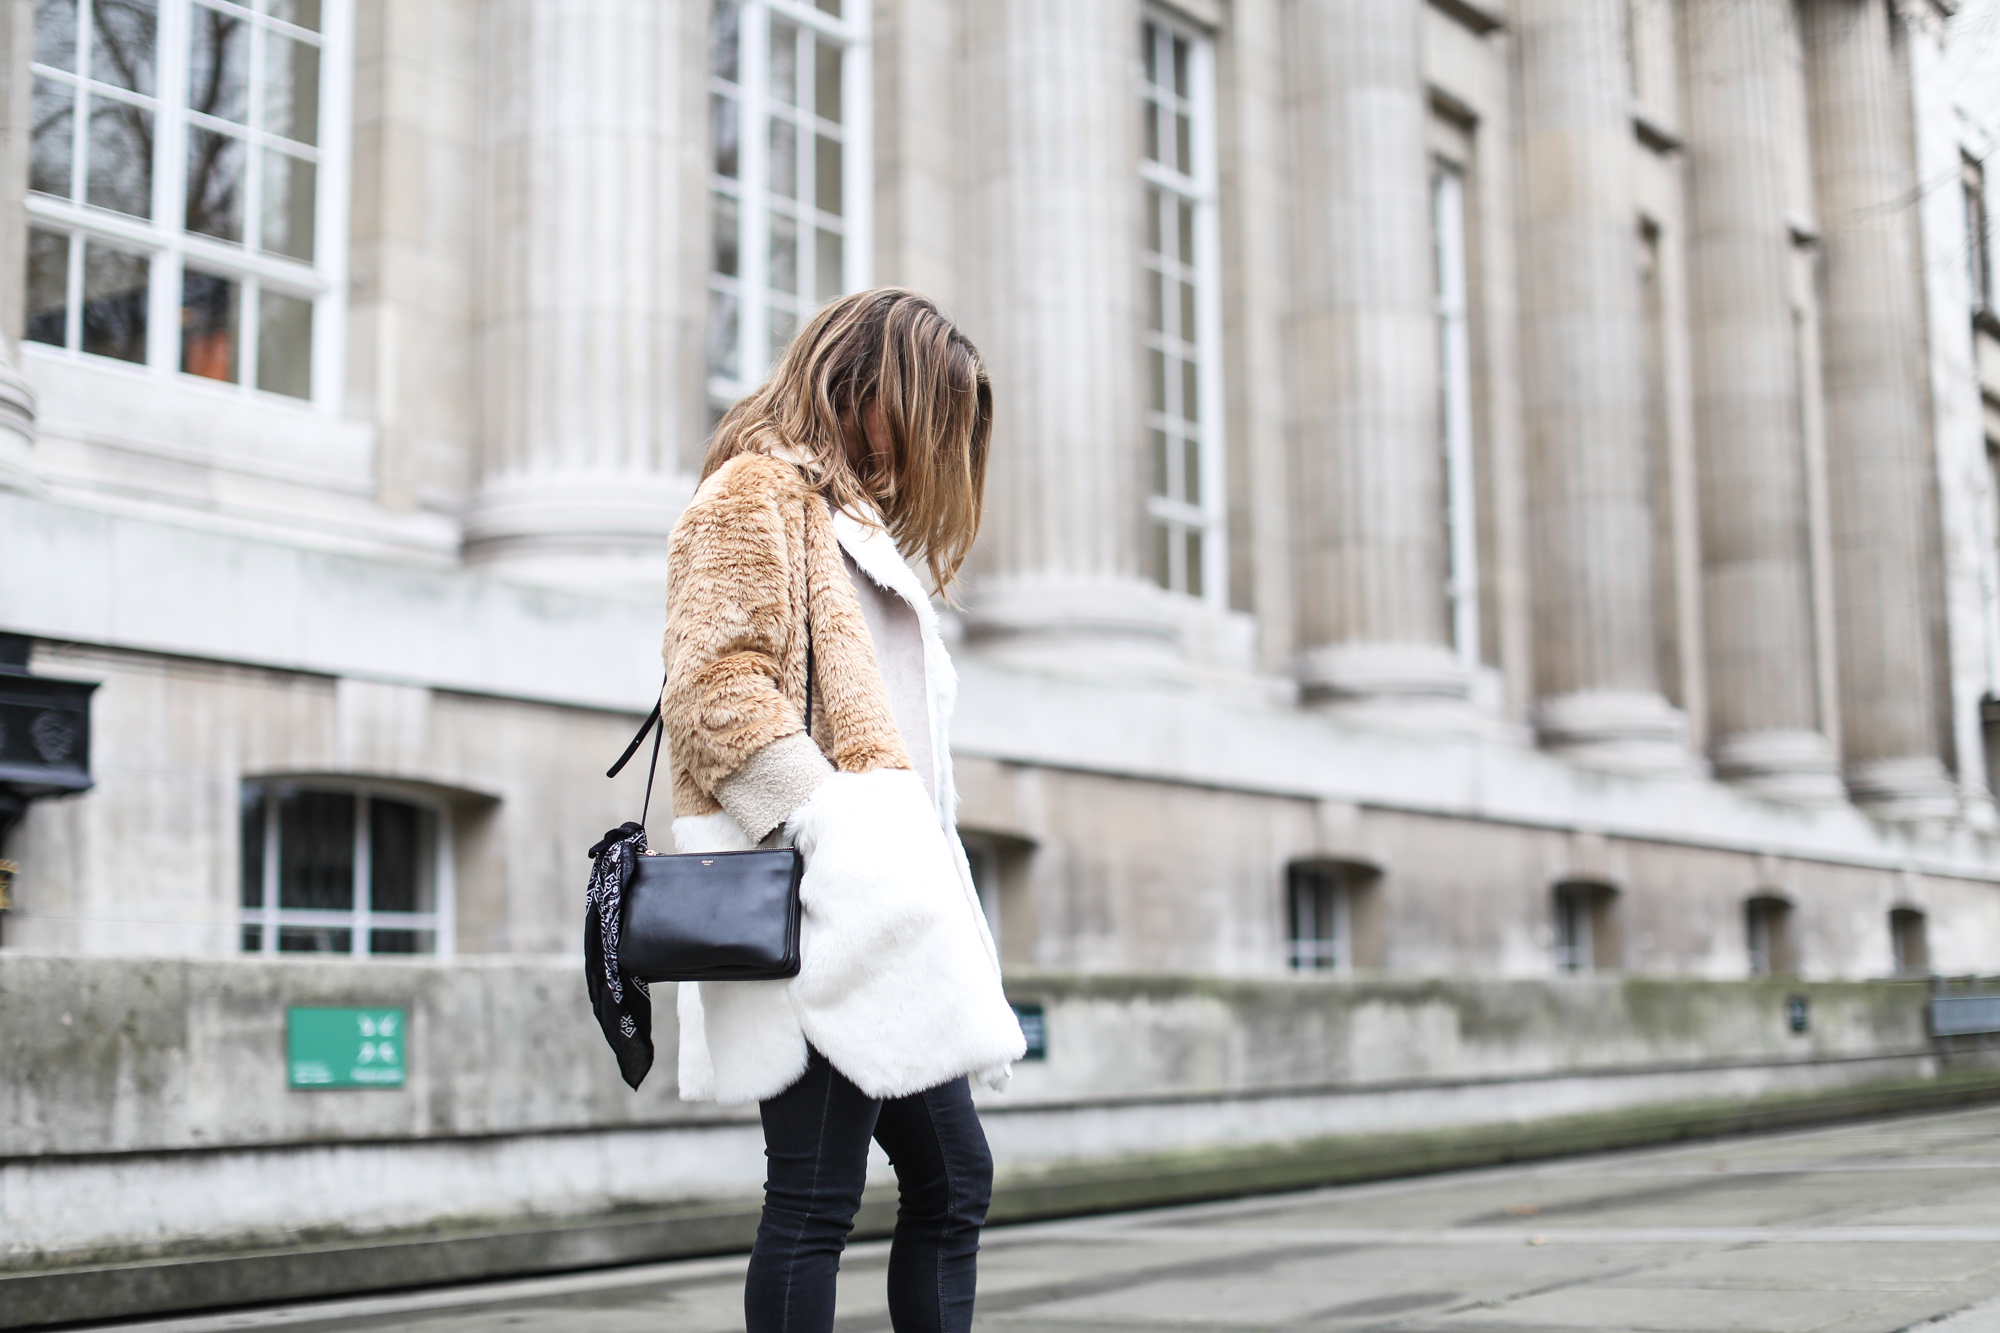 clochet_streestyle_london_asos_faux_fur_patchowork_coat_topshop_jamie_jeans-9